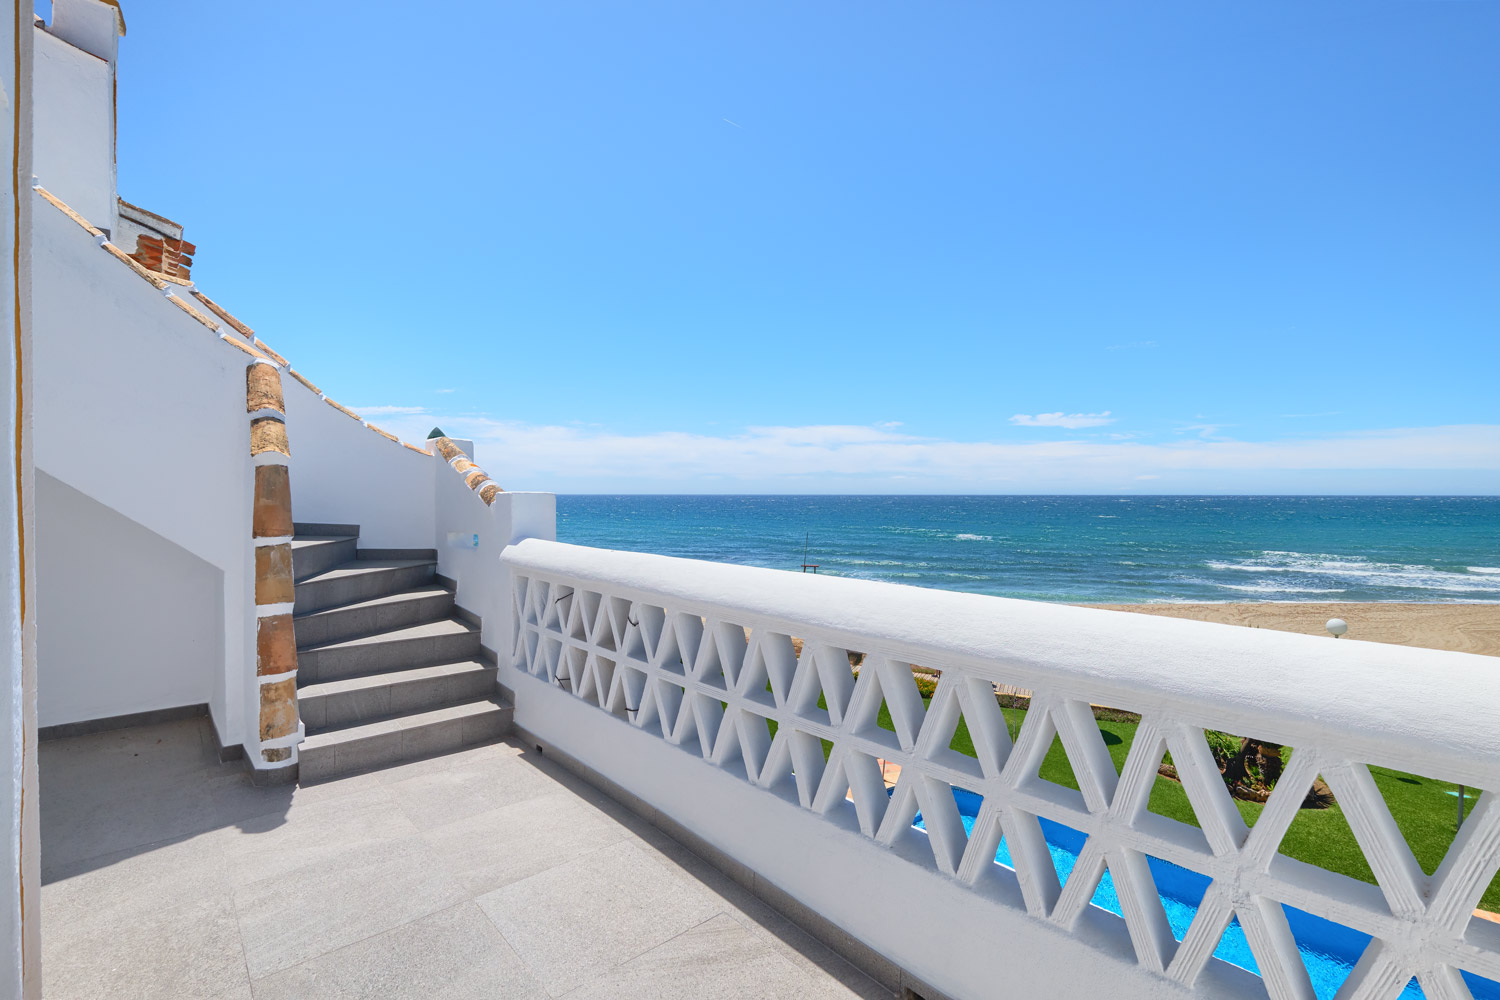 Greenlife-estates-frontline-penthouse-marbella-east-terrace